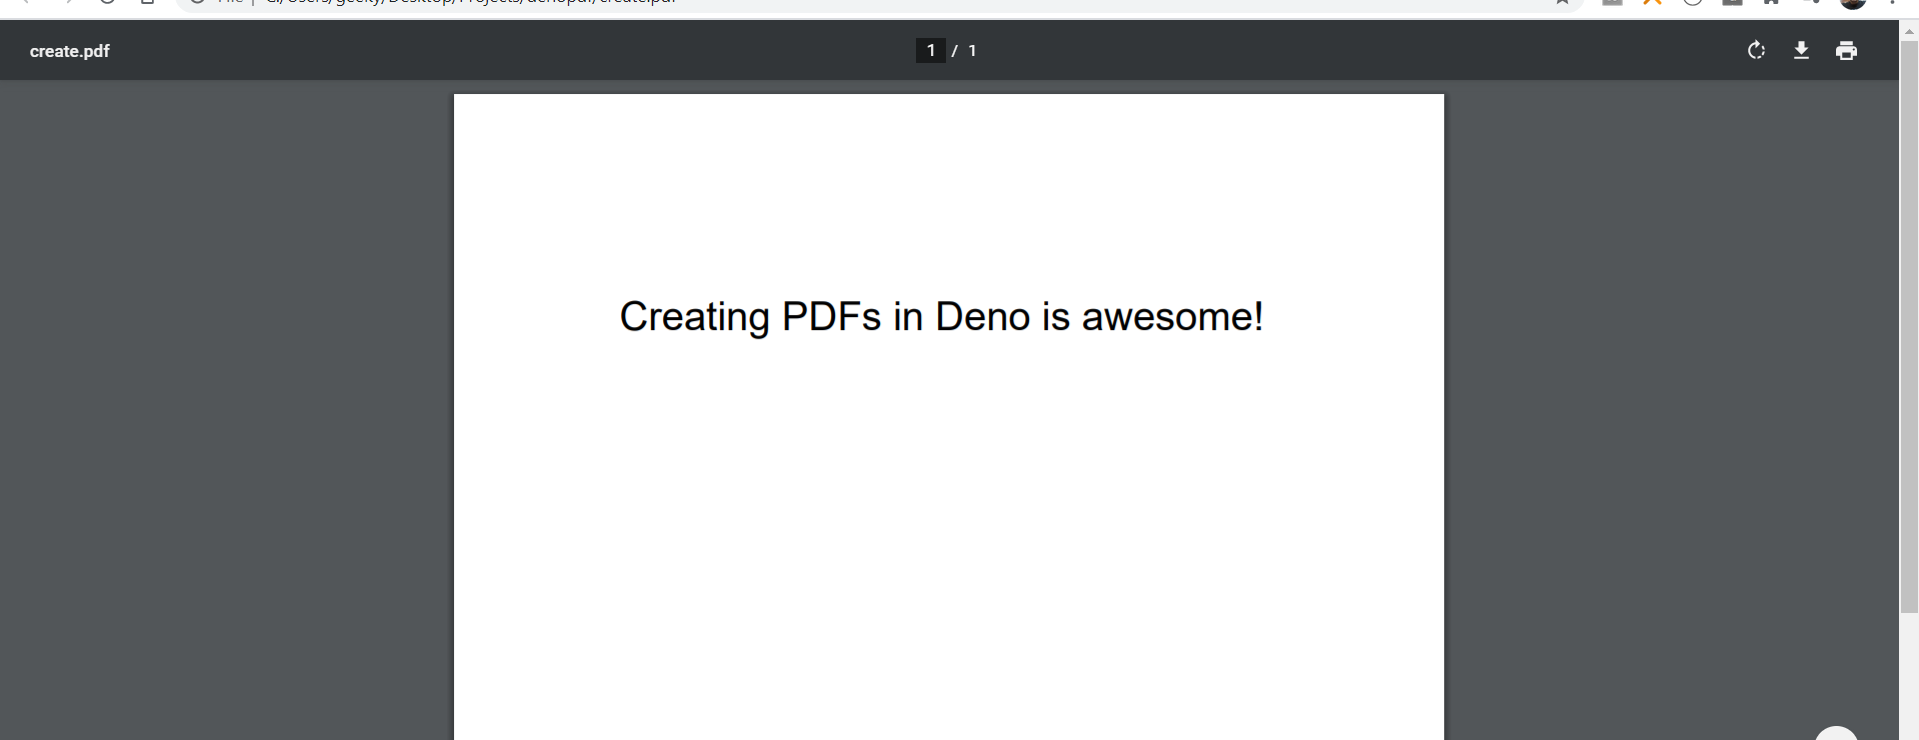 How to Create PDF Files in Deno Using PDF-LIB Library Full Tutorial with Example